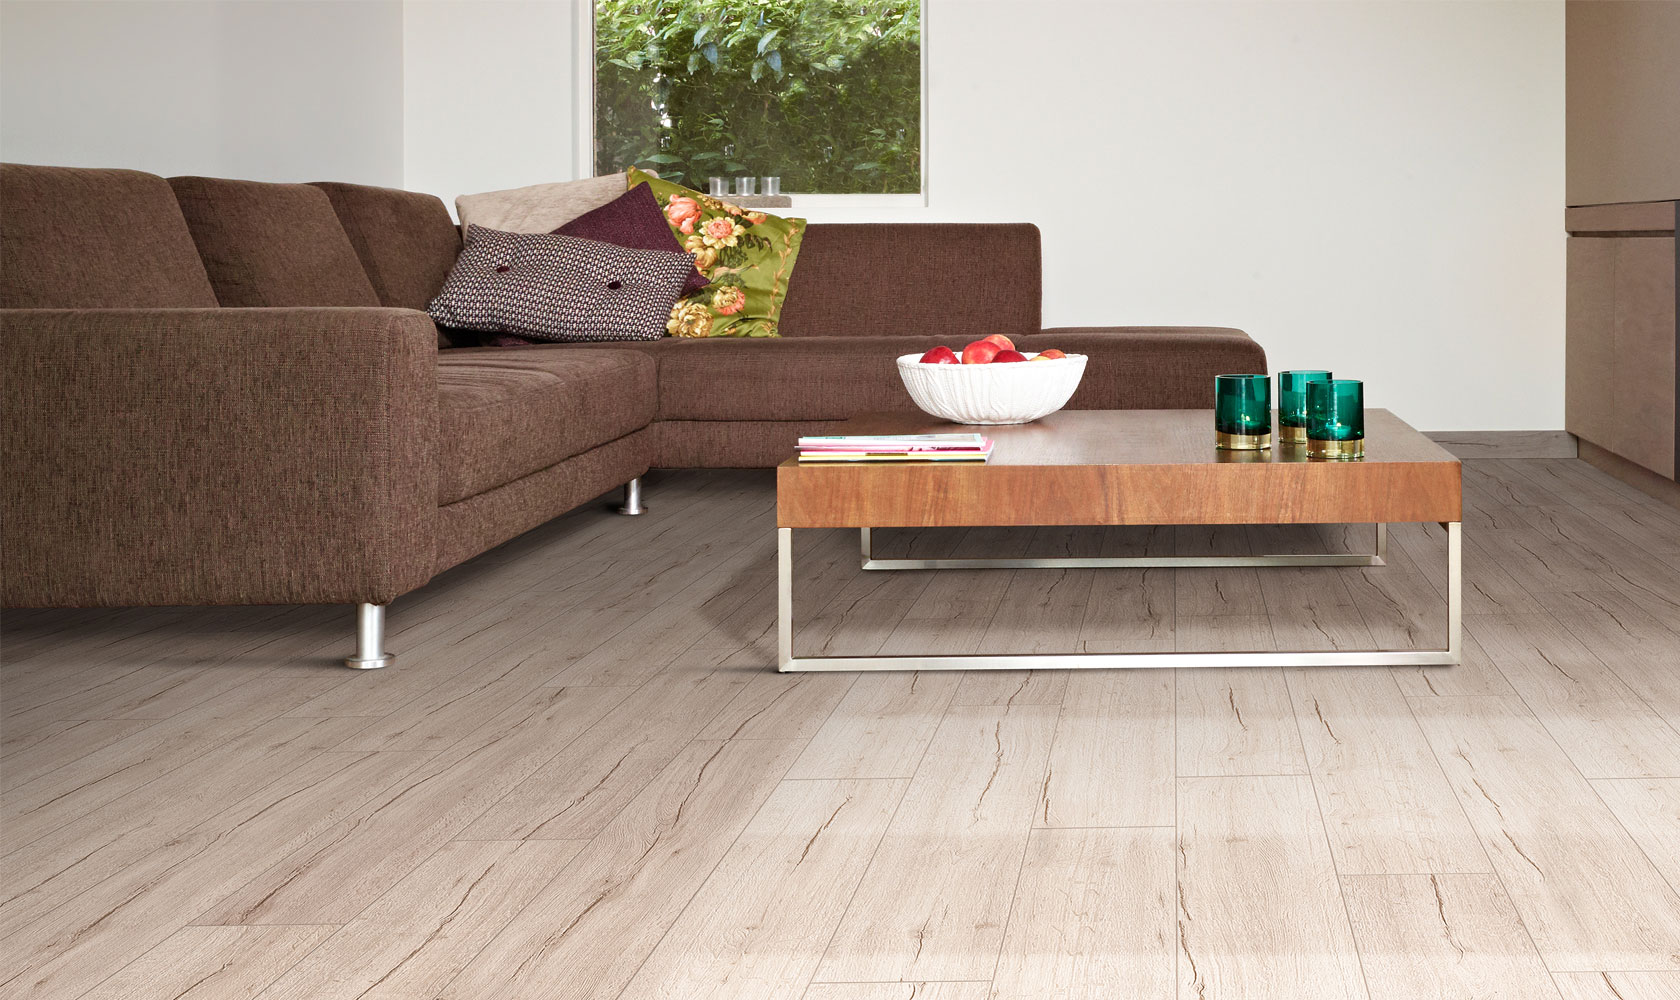 Luxury Laminate Flooring inspired elegance vineyard oak luxury laminate flooring Balterio Luxury Laminate Flooring Tradition Quattro Coral White 932